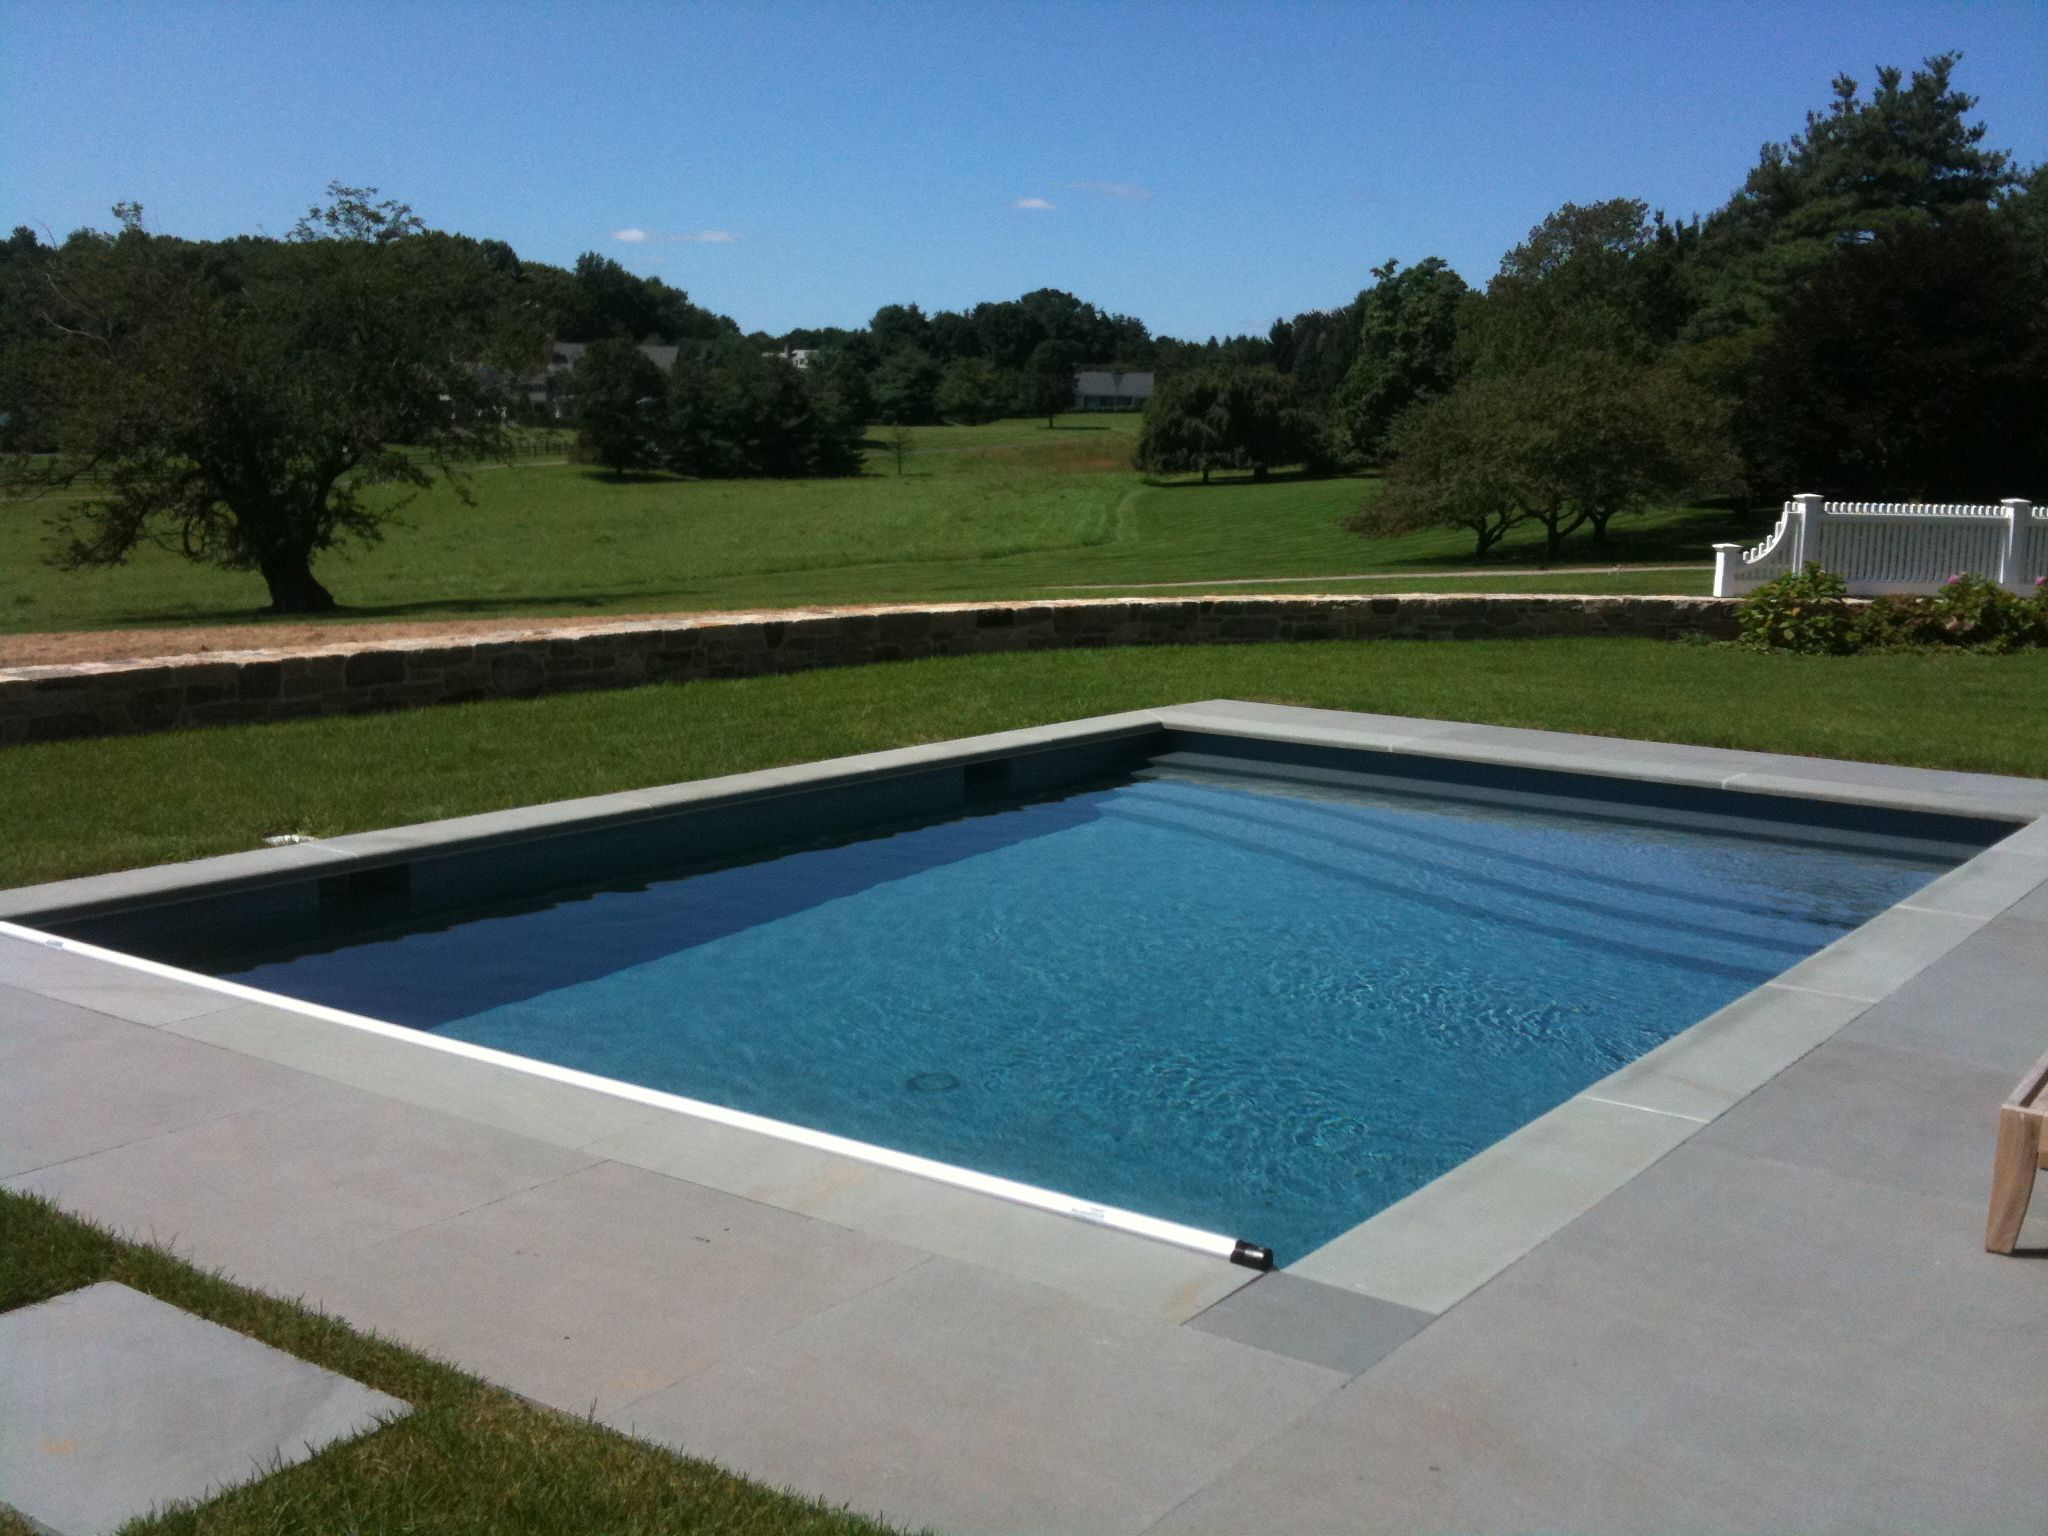 400 Sq Ft Pool With Bluestone Coping And Patio Custom Glass